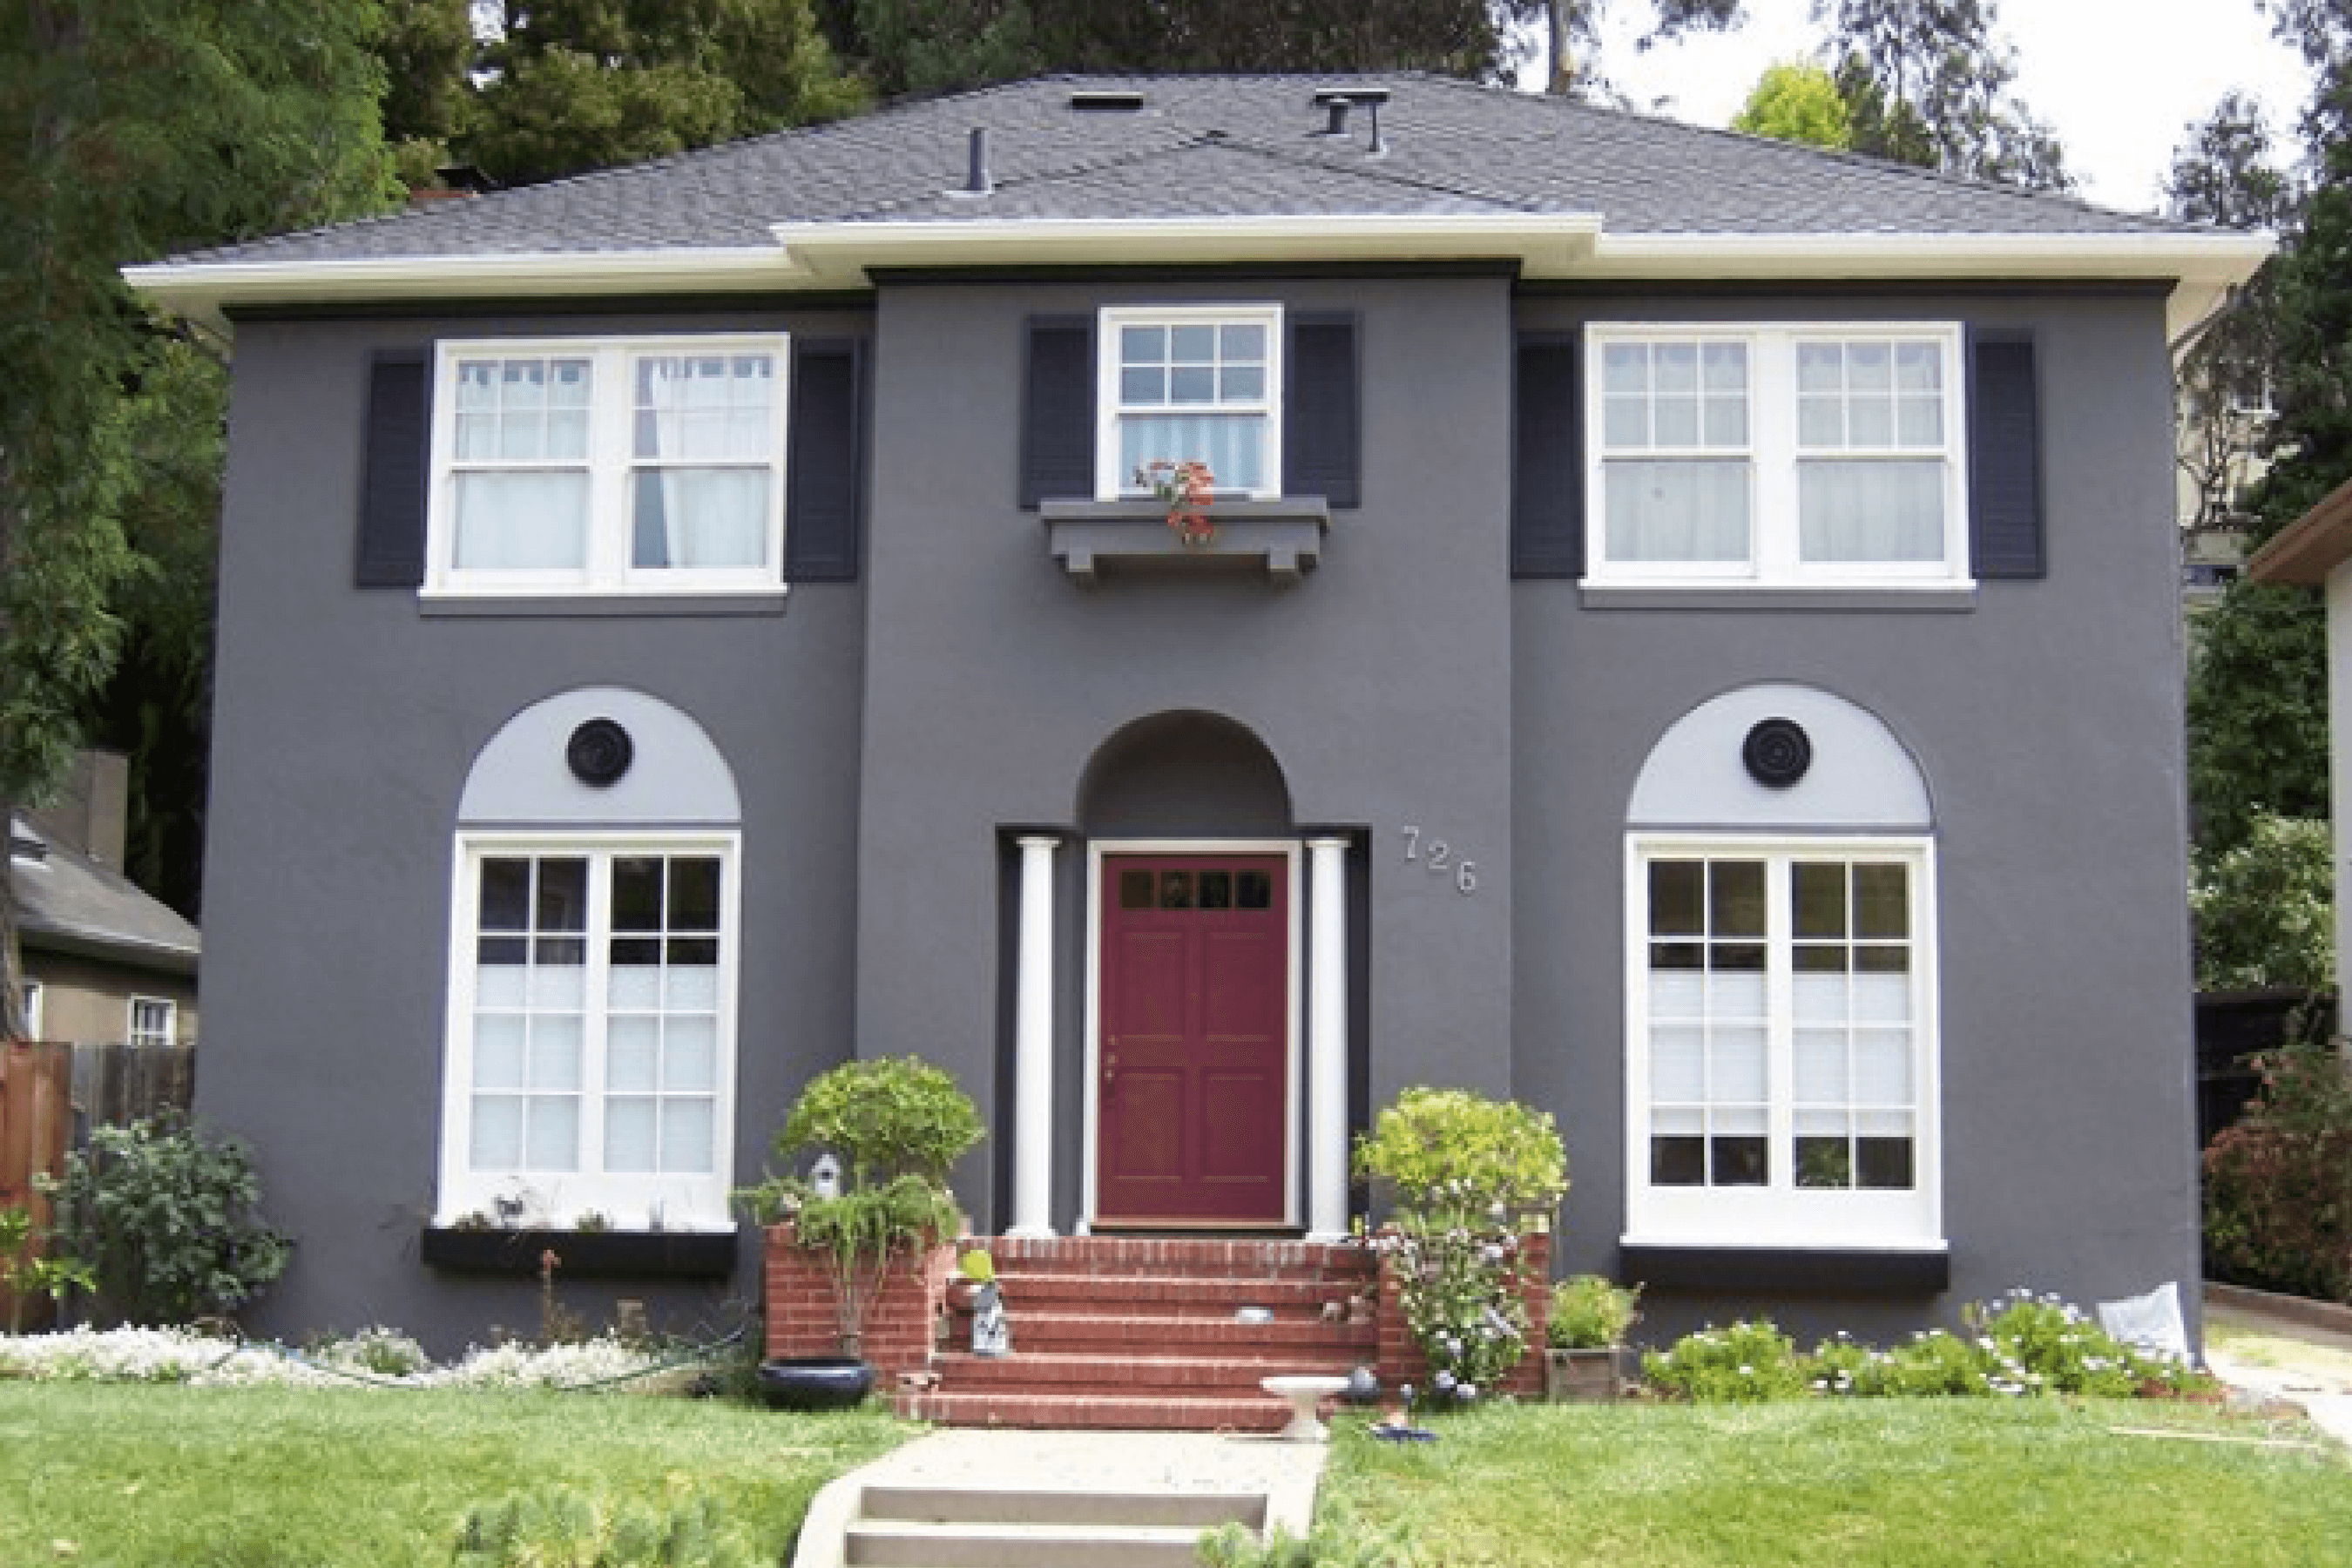 What Color Should You Paint Your Exterior Trim? | Expert Advice